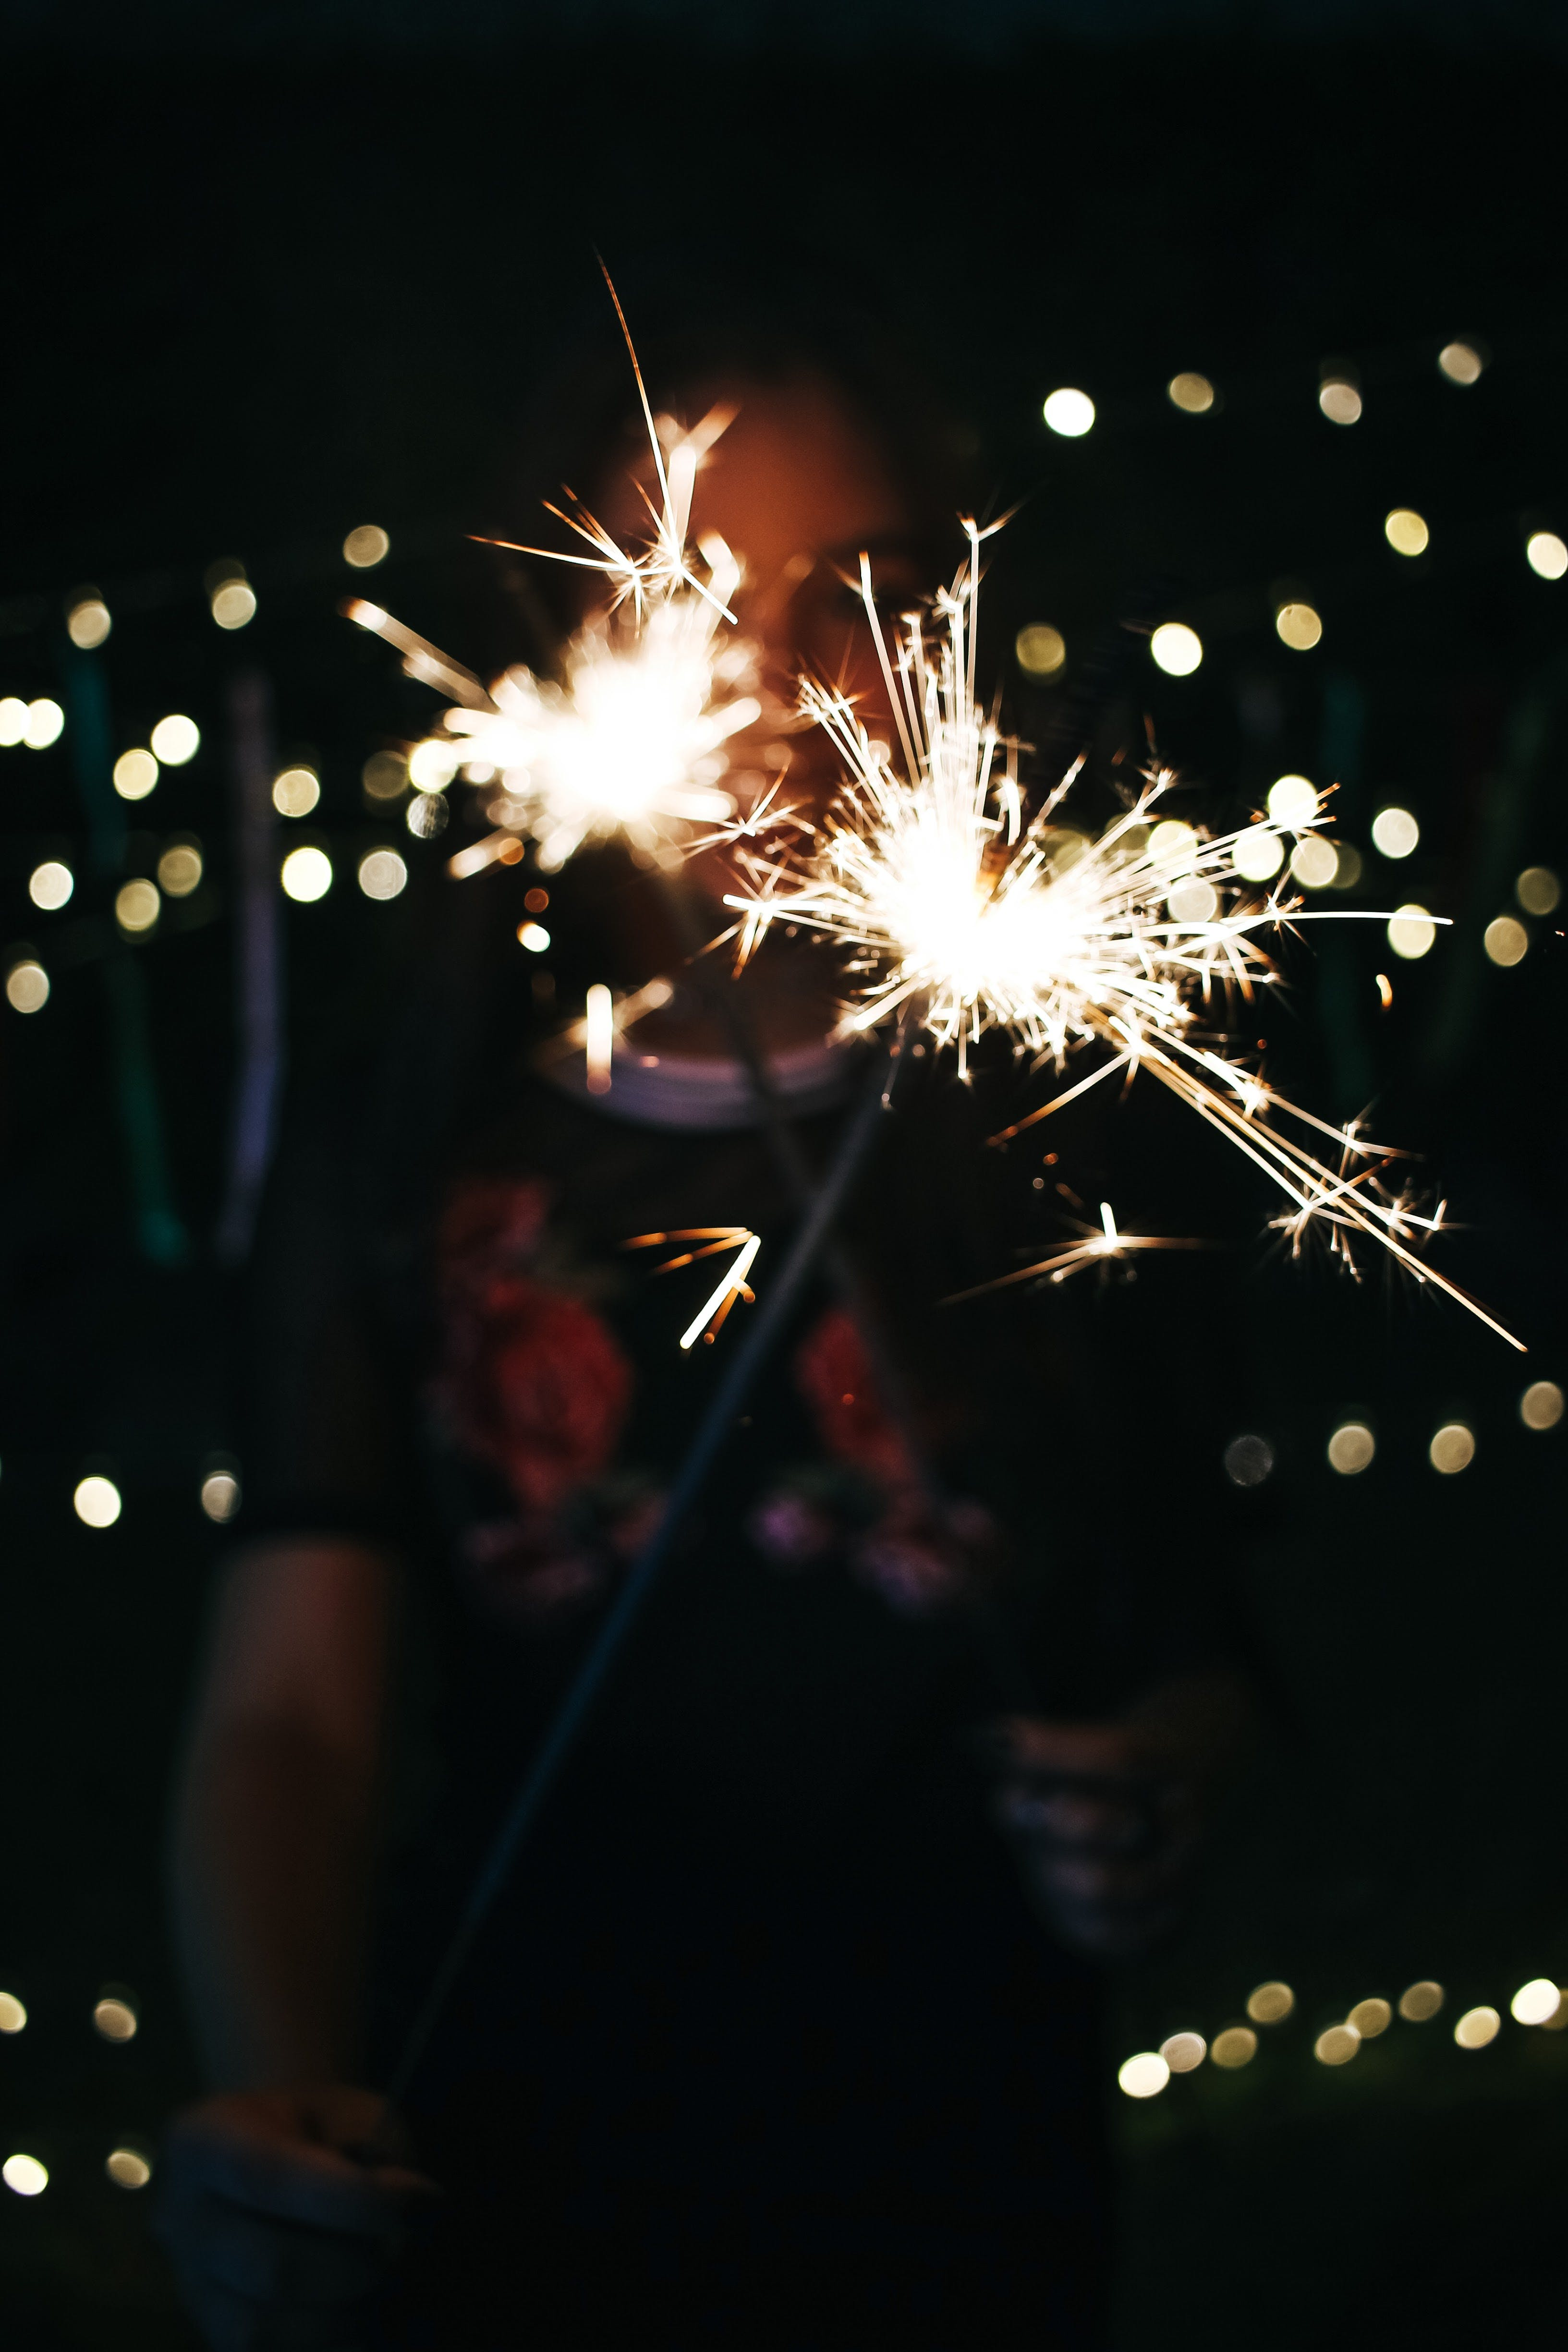 Bokeh Photography of Photo of Person Holding Sprinkler